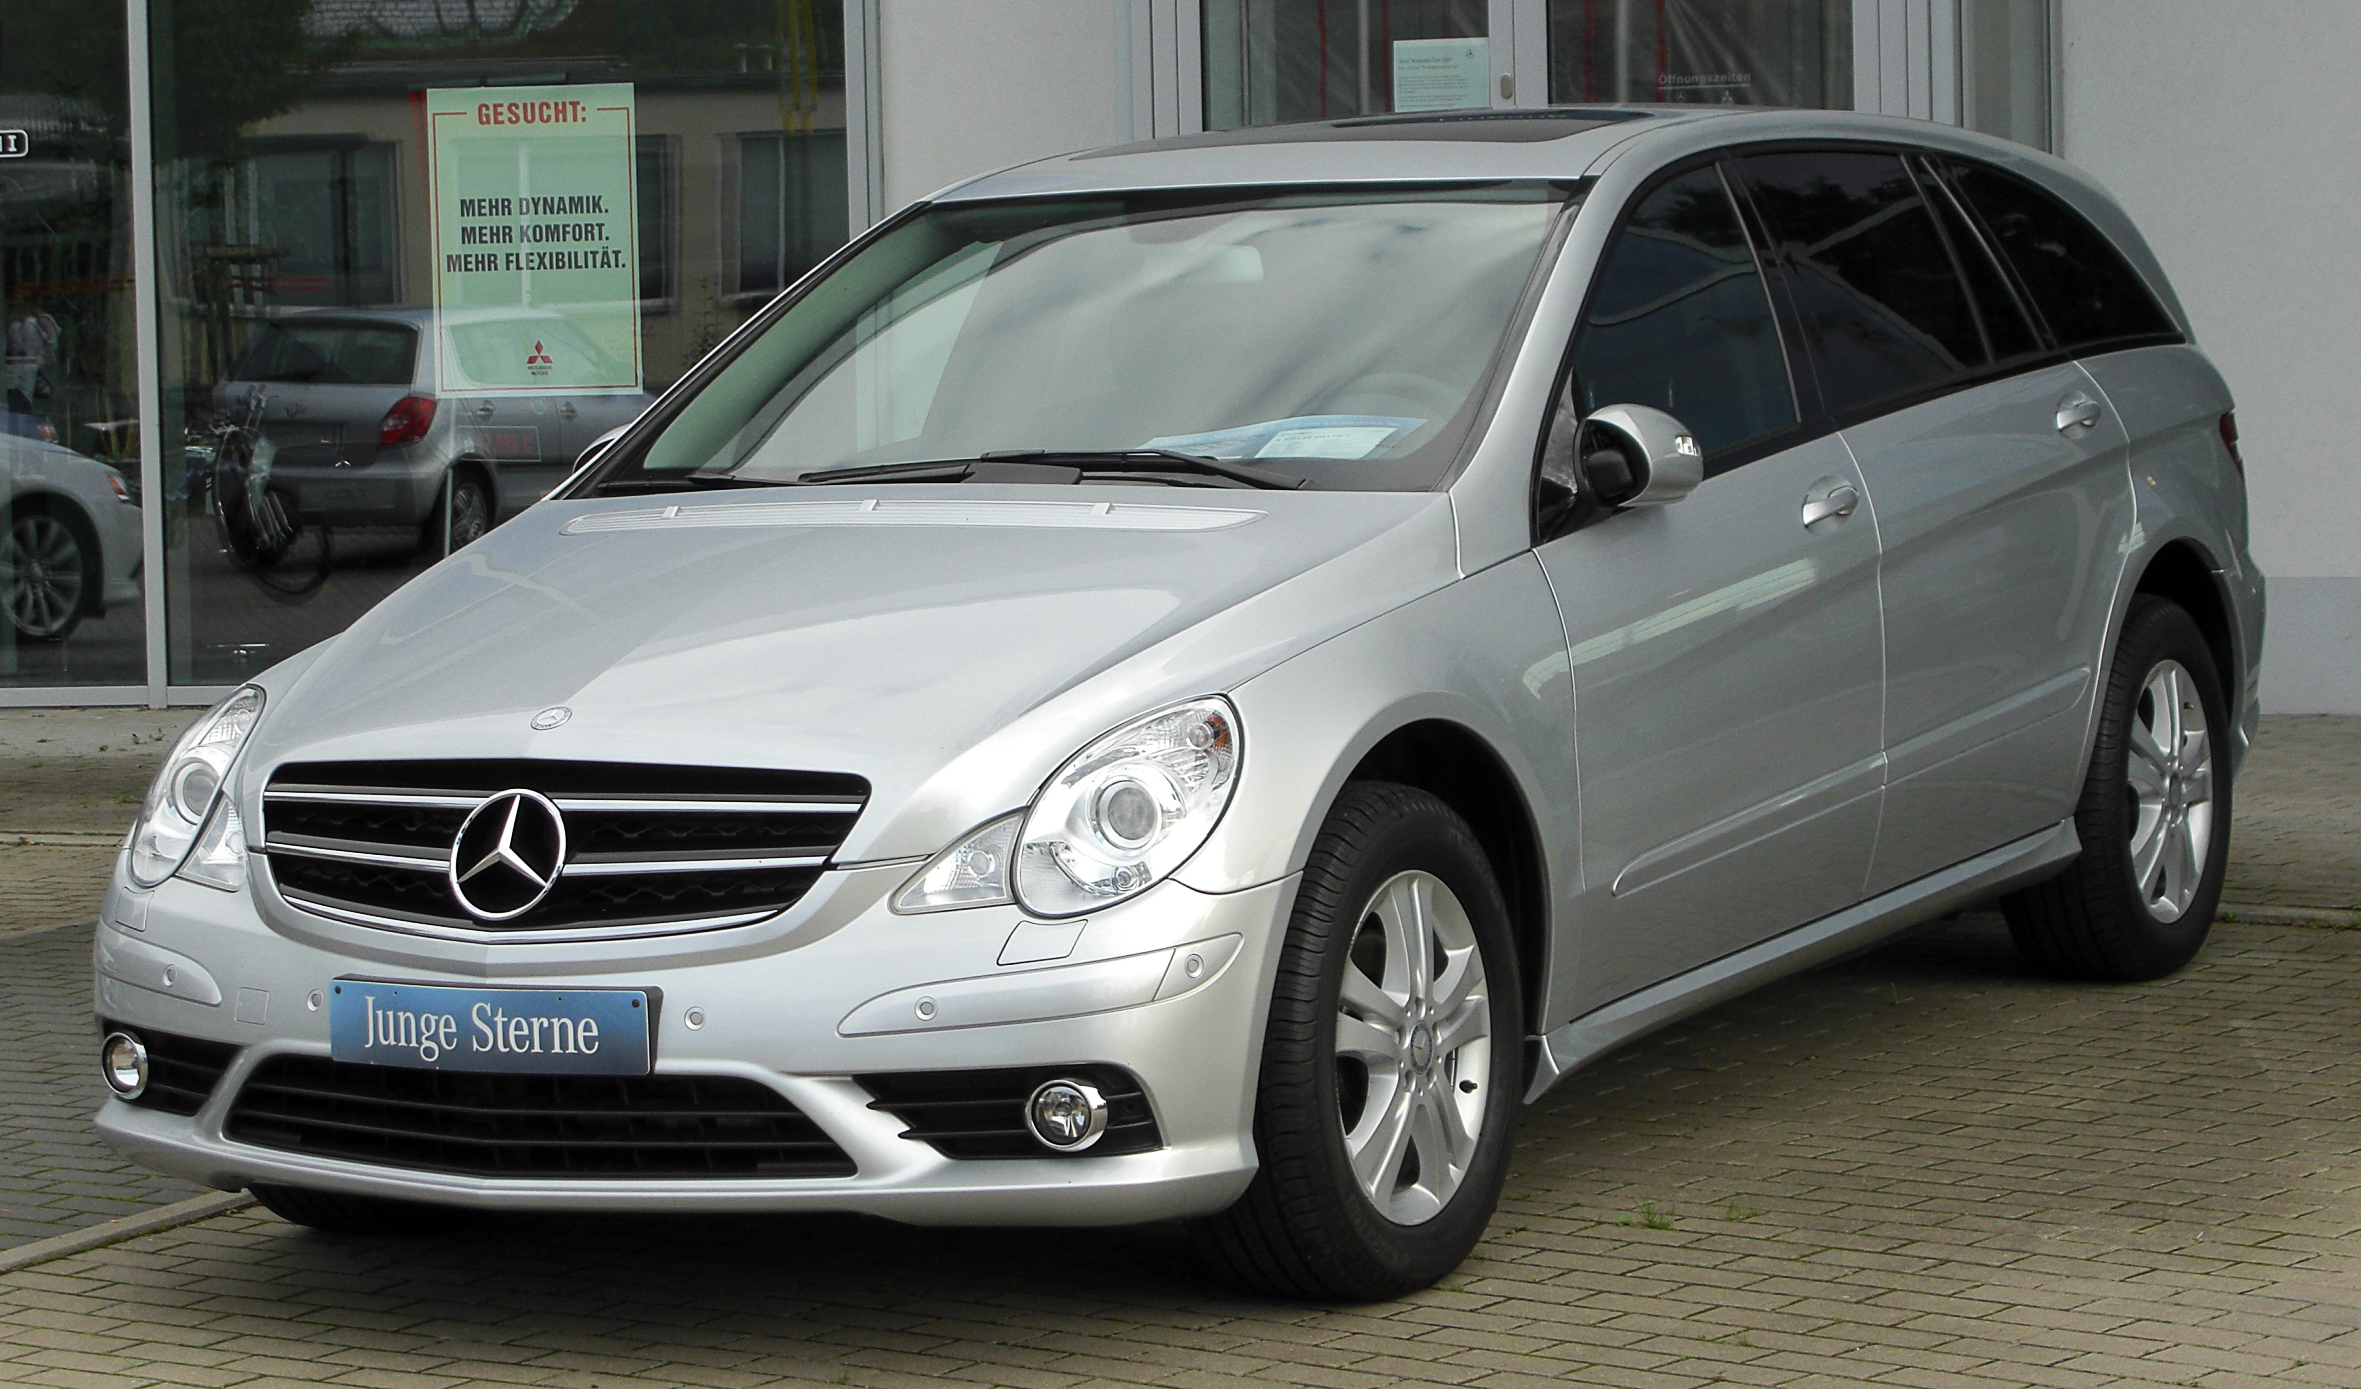 File:Mercedes R 320 CDI 4MATIC L (V251) I. Facelift front 20100918 ...